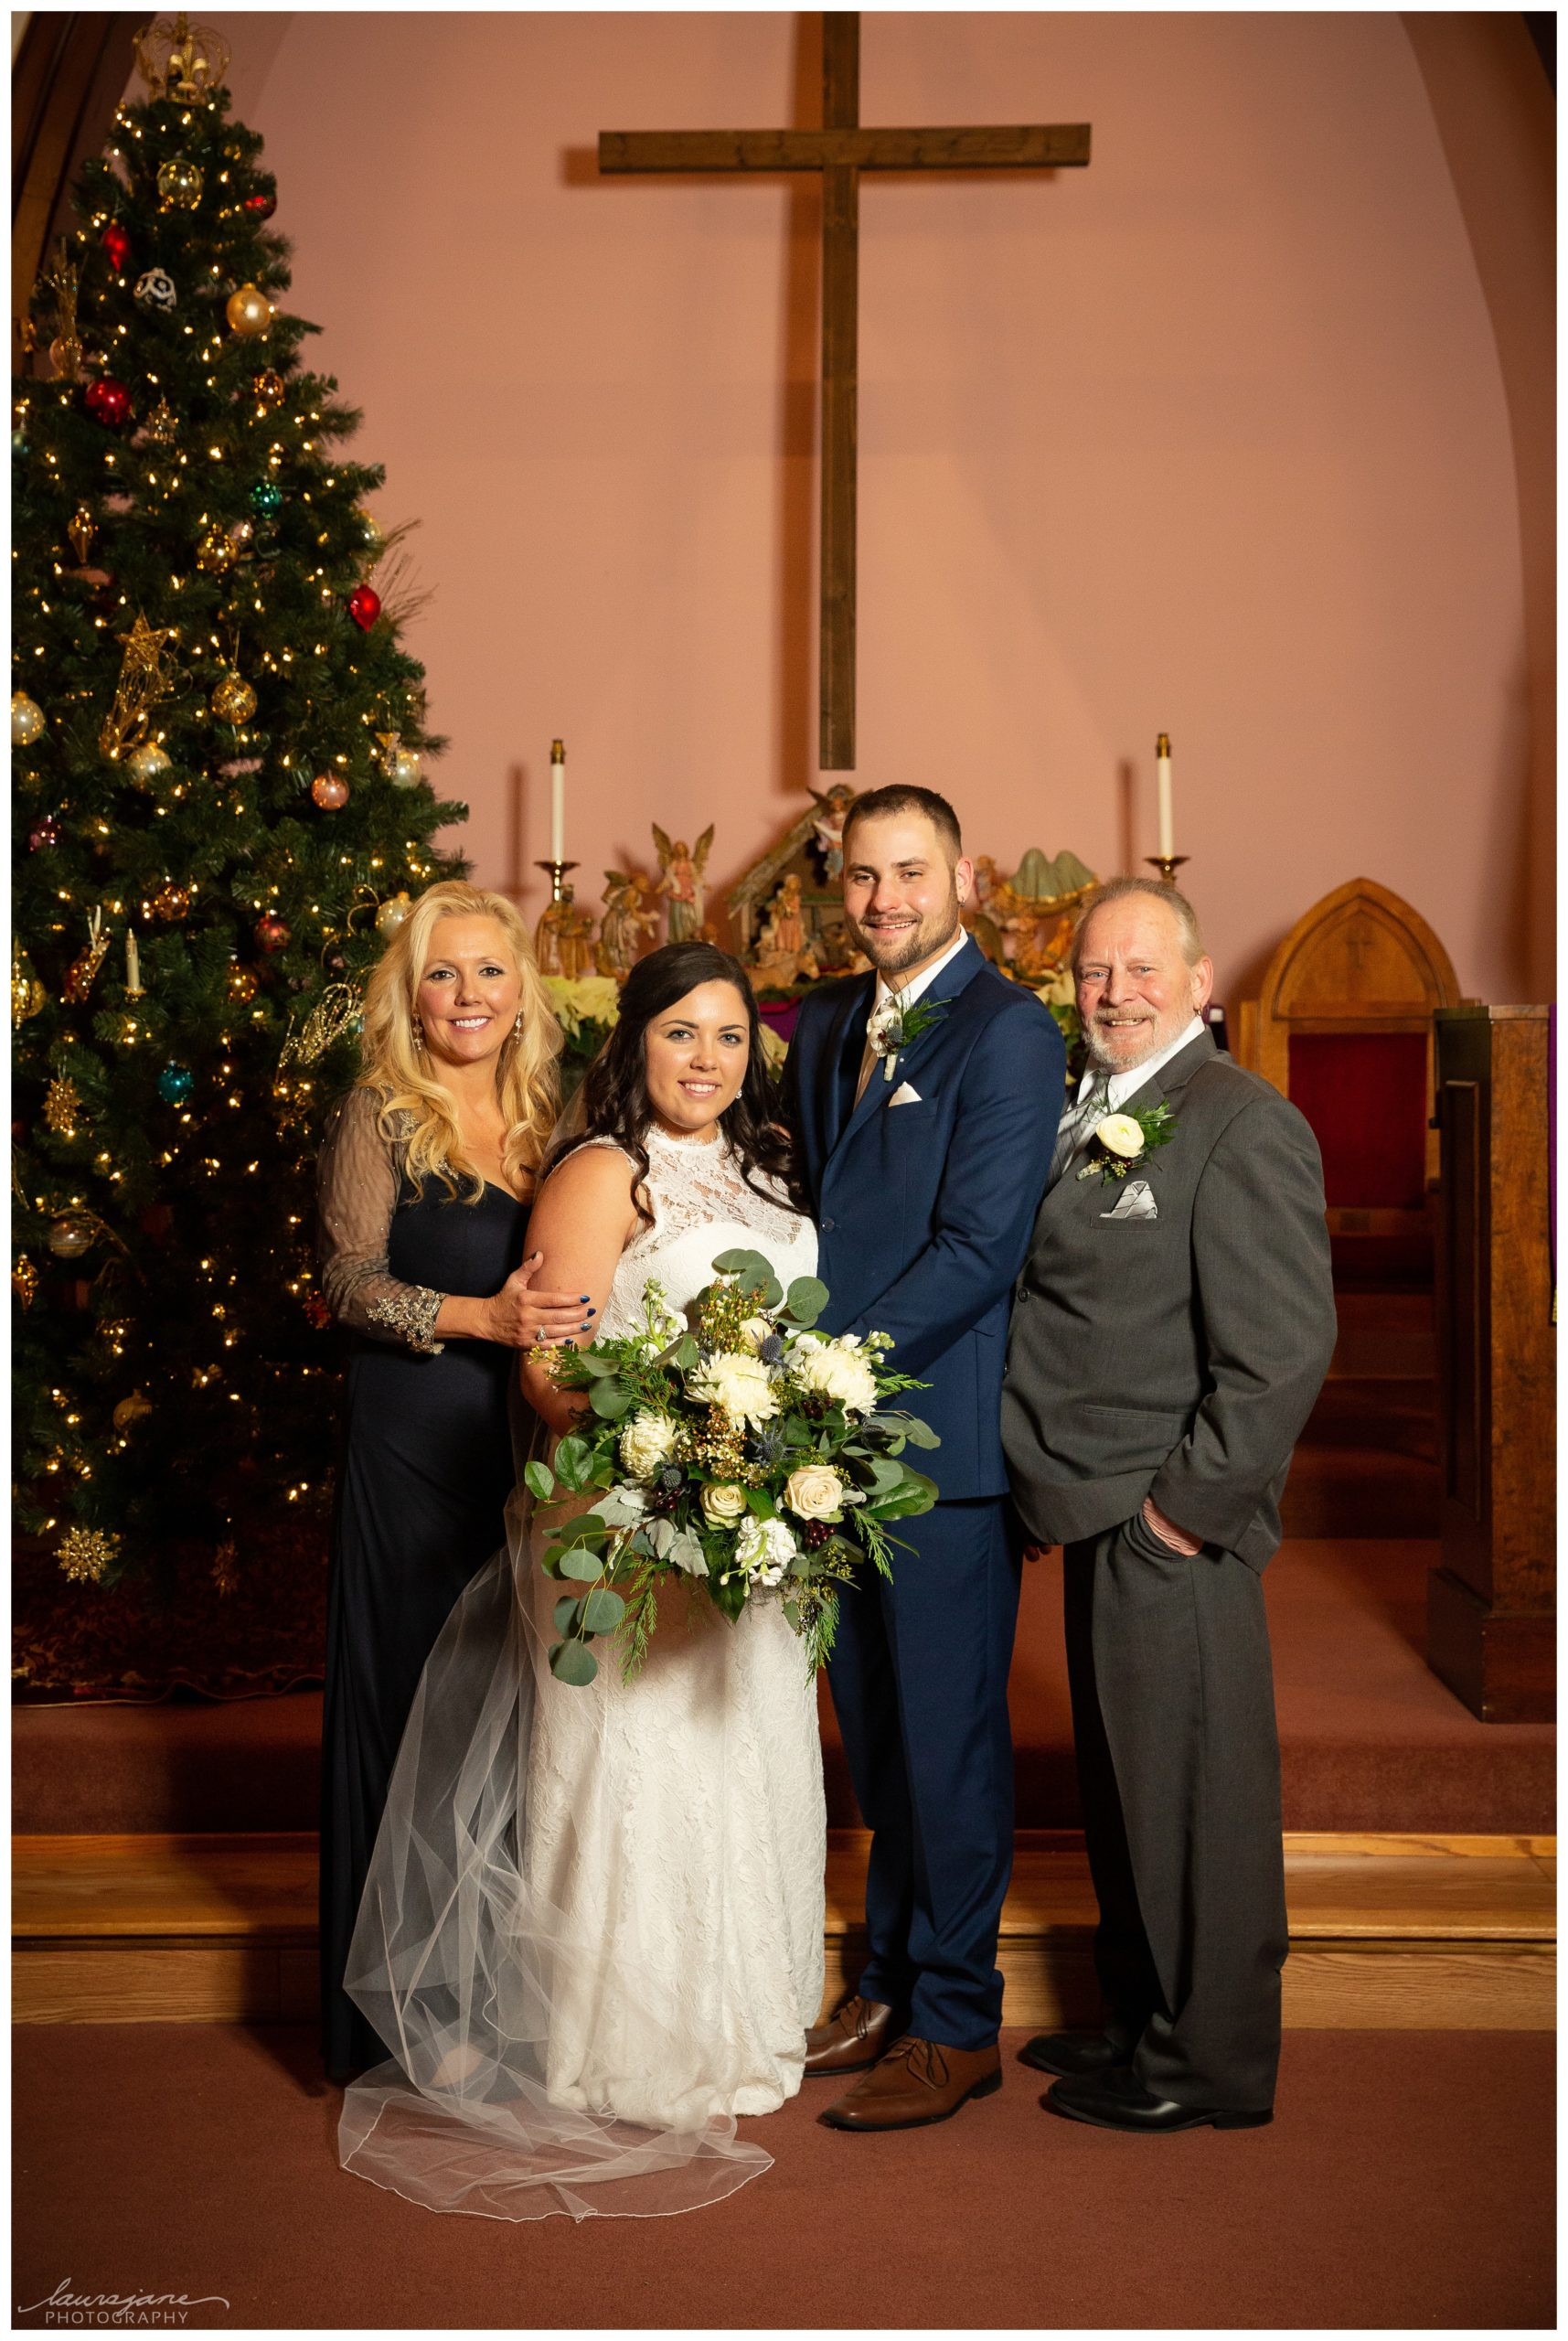 Classic Family Portraits at Weddings